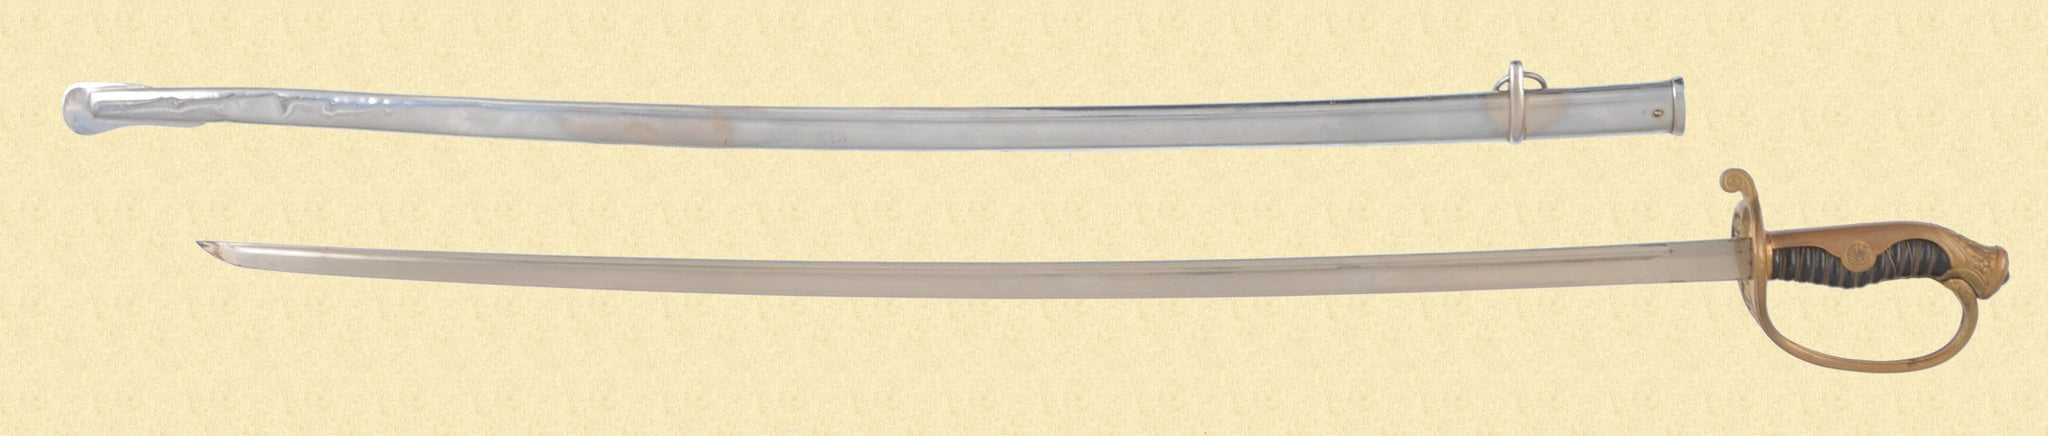 JAPANESE ARMY PARADE SWORD